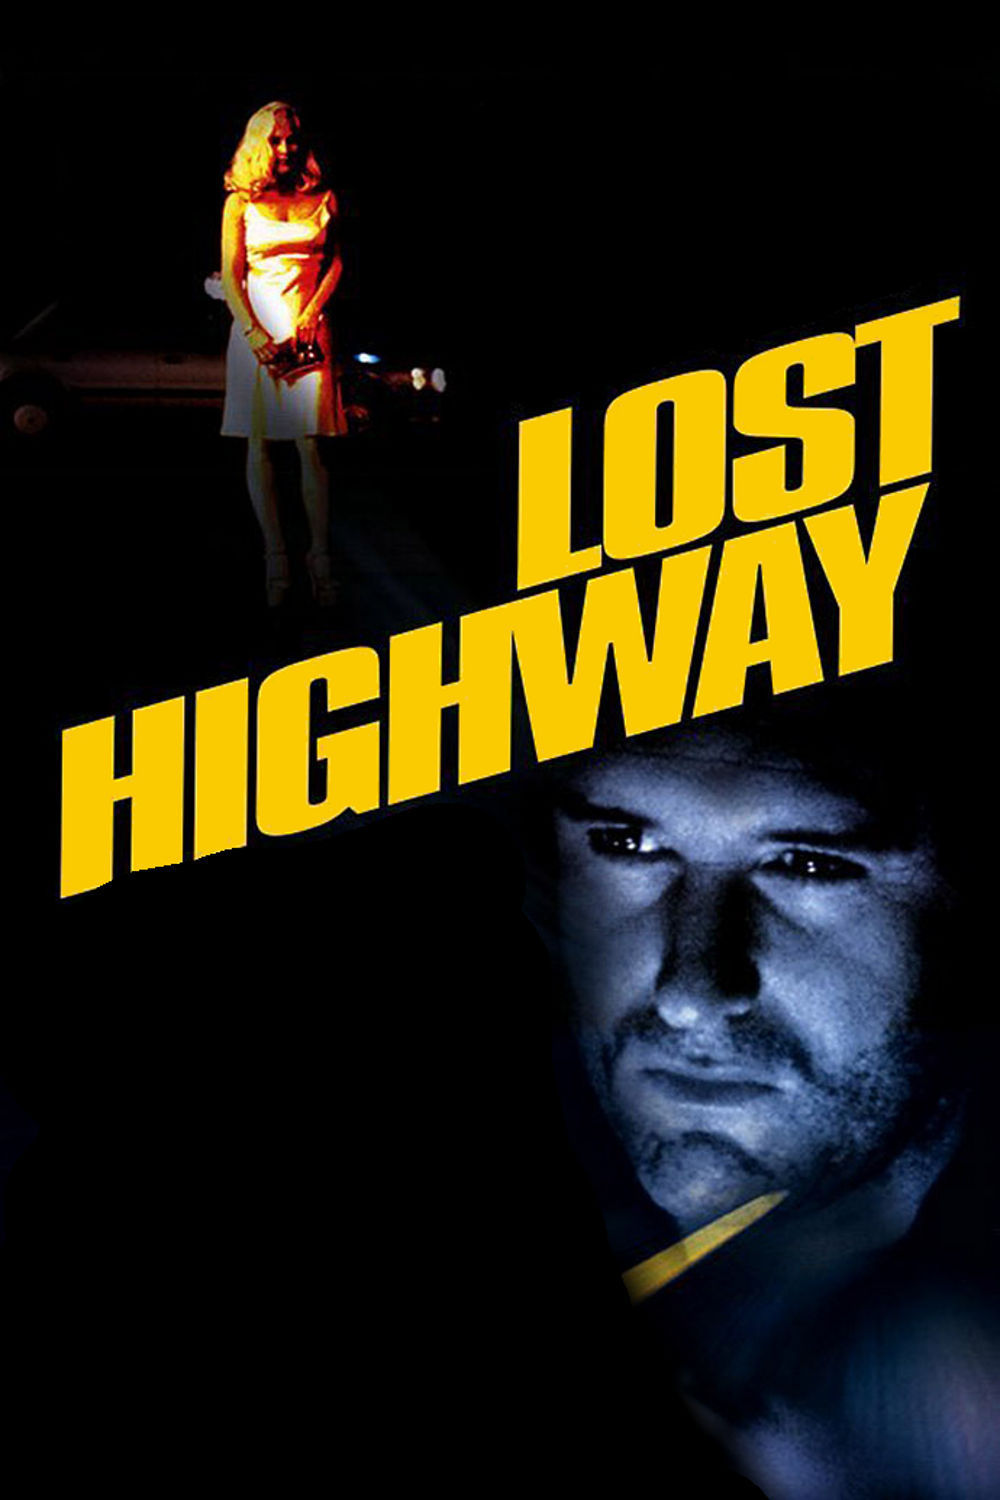 lost highway essay In this video essay from jeff keeling (via one perfect shot) takes a look at director david lynch's film lost highway as a response to imitators, particularly oliver stone, who served as executive producer on wild palms.